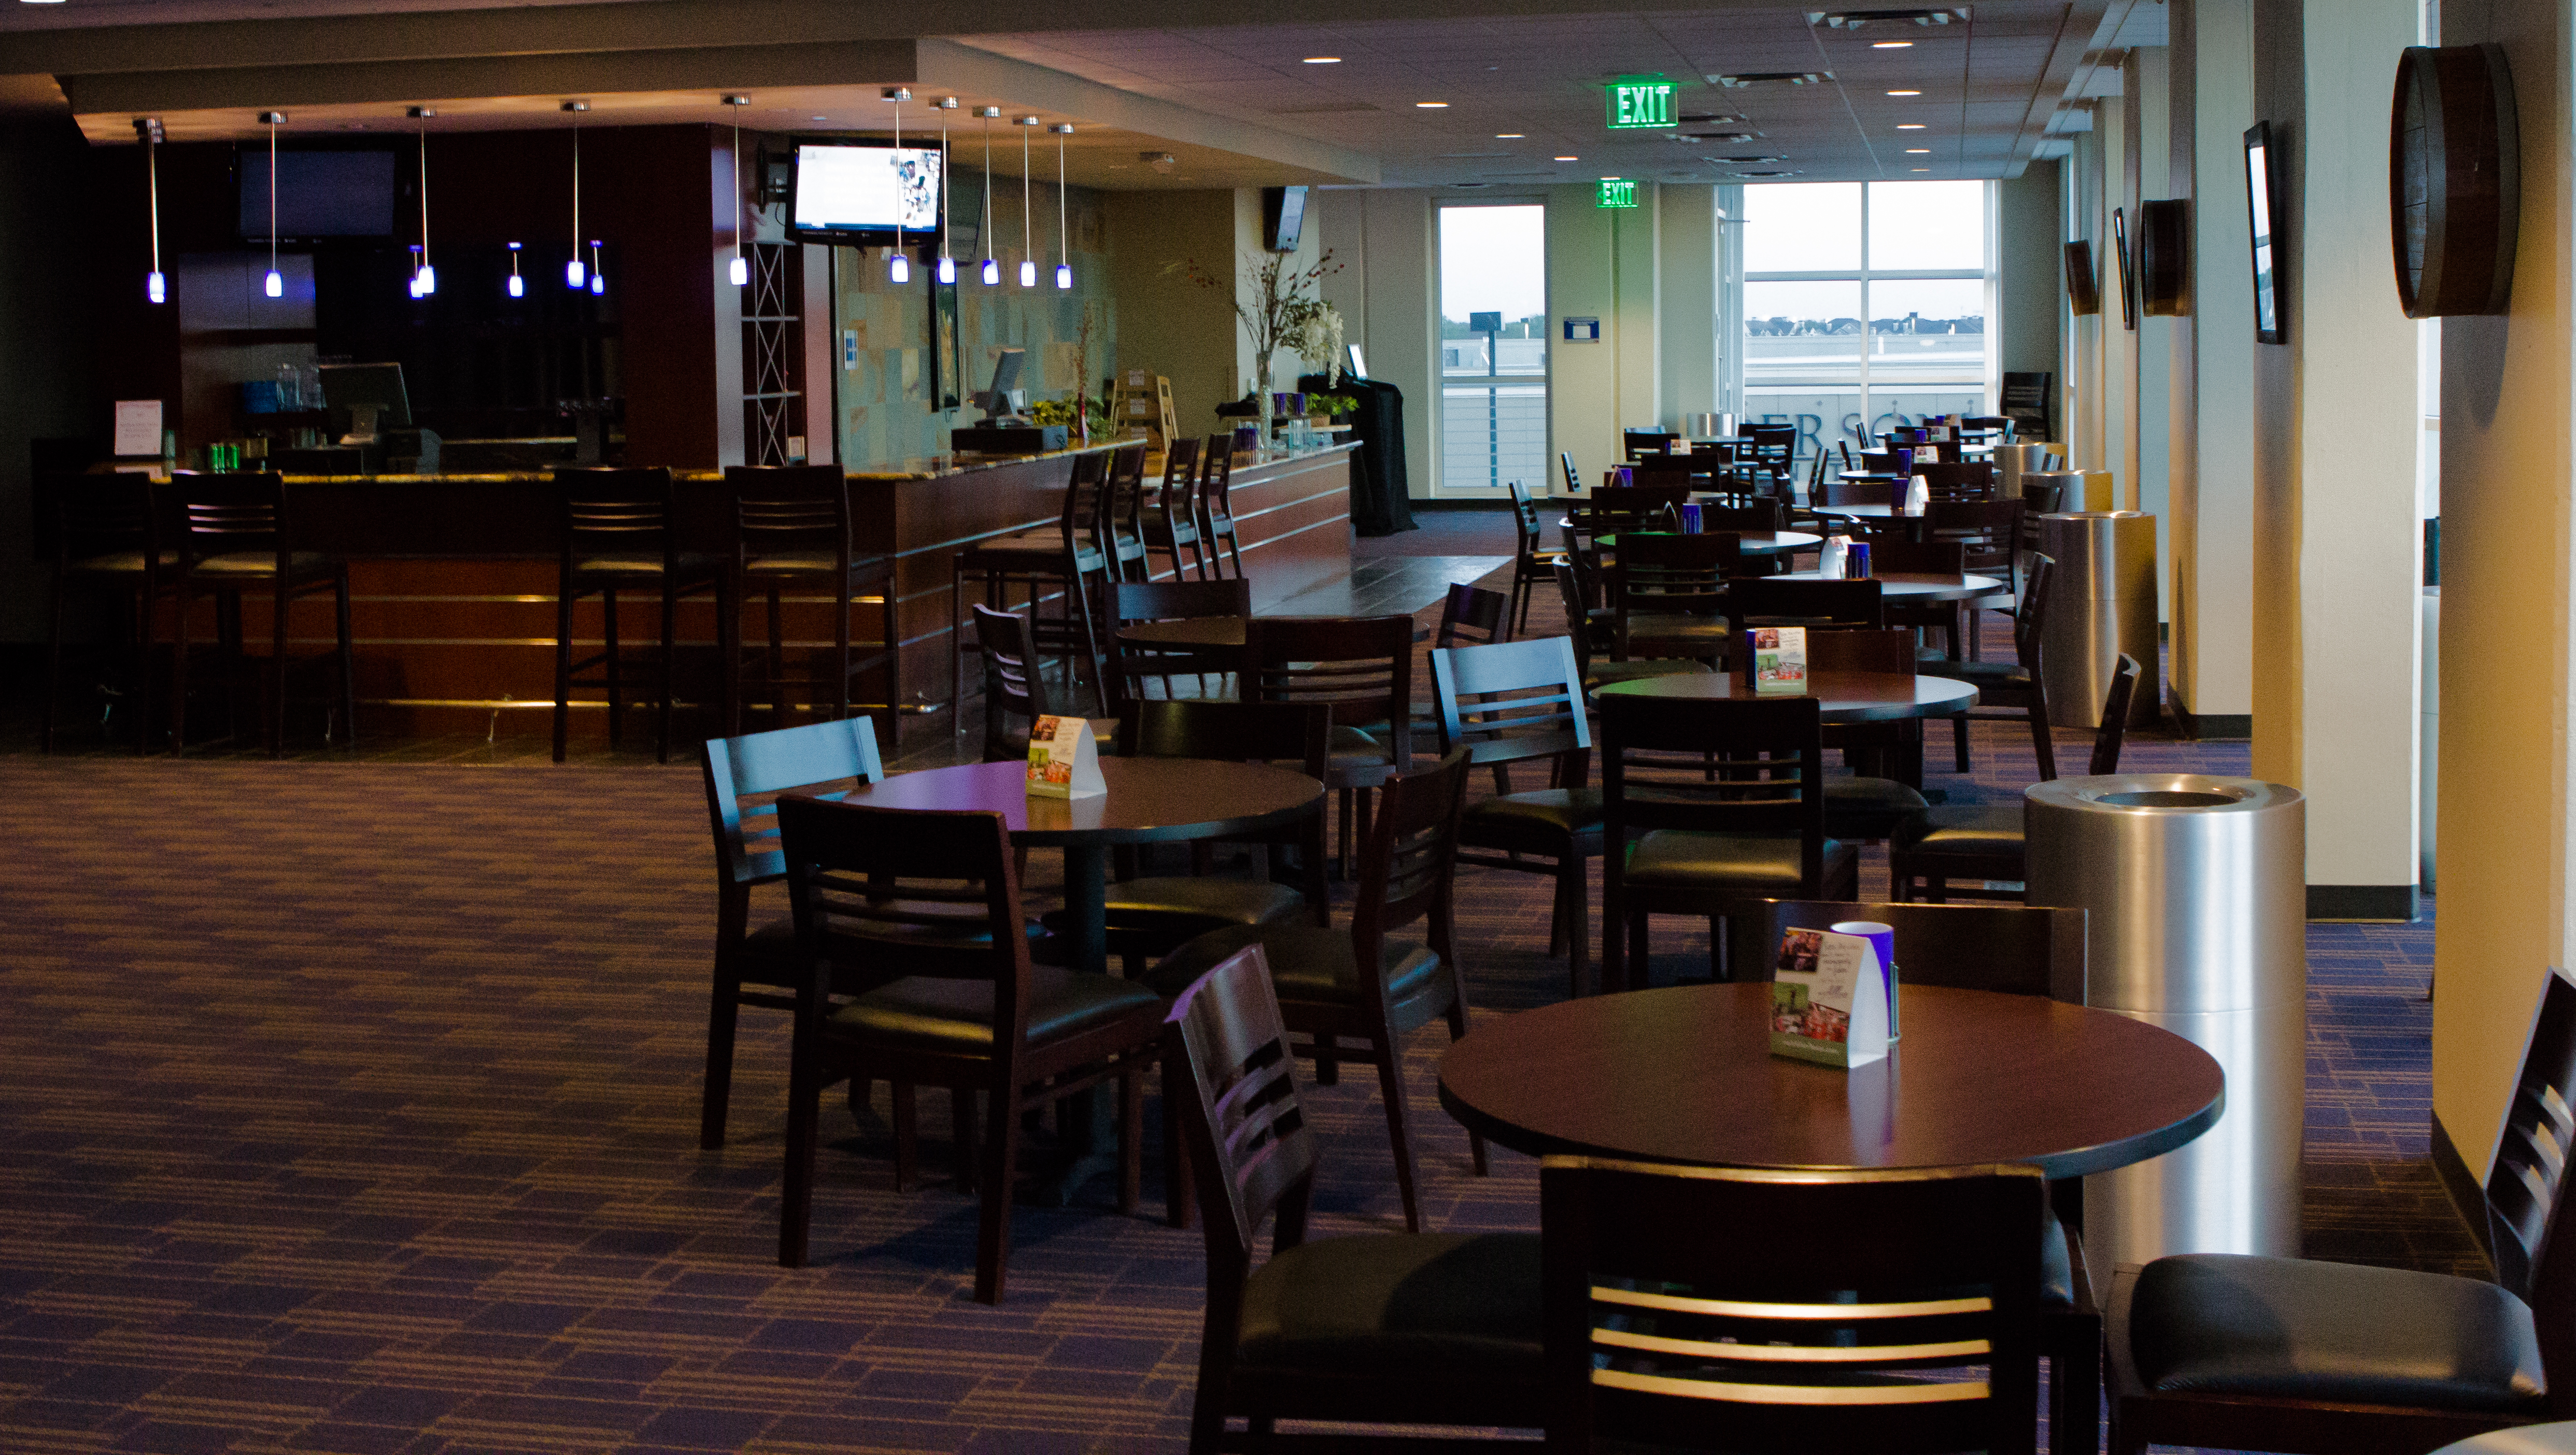 The approximately 1,500 square foot Jameson Lounge is a great space for smaller groups